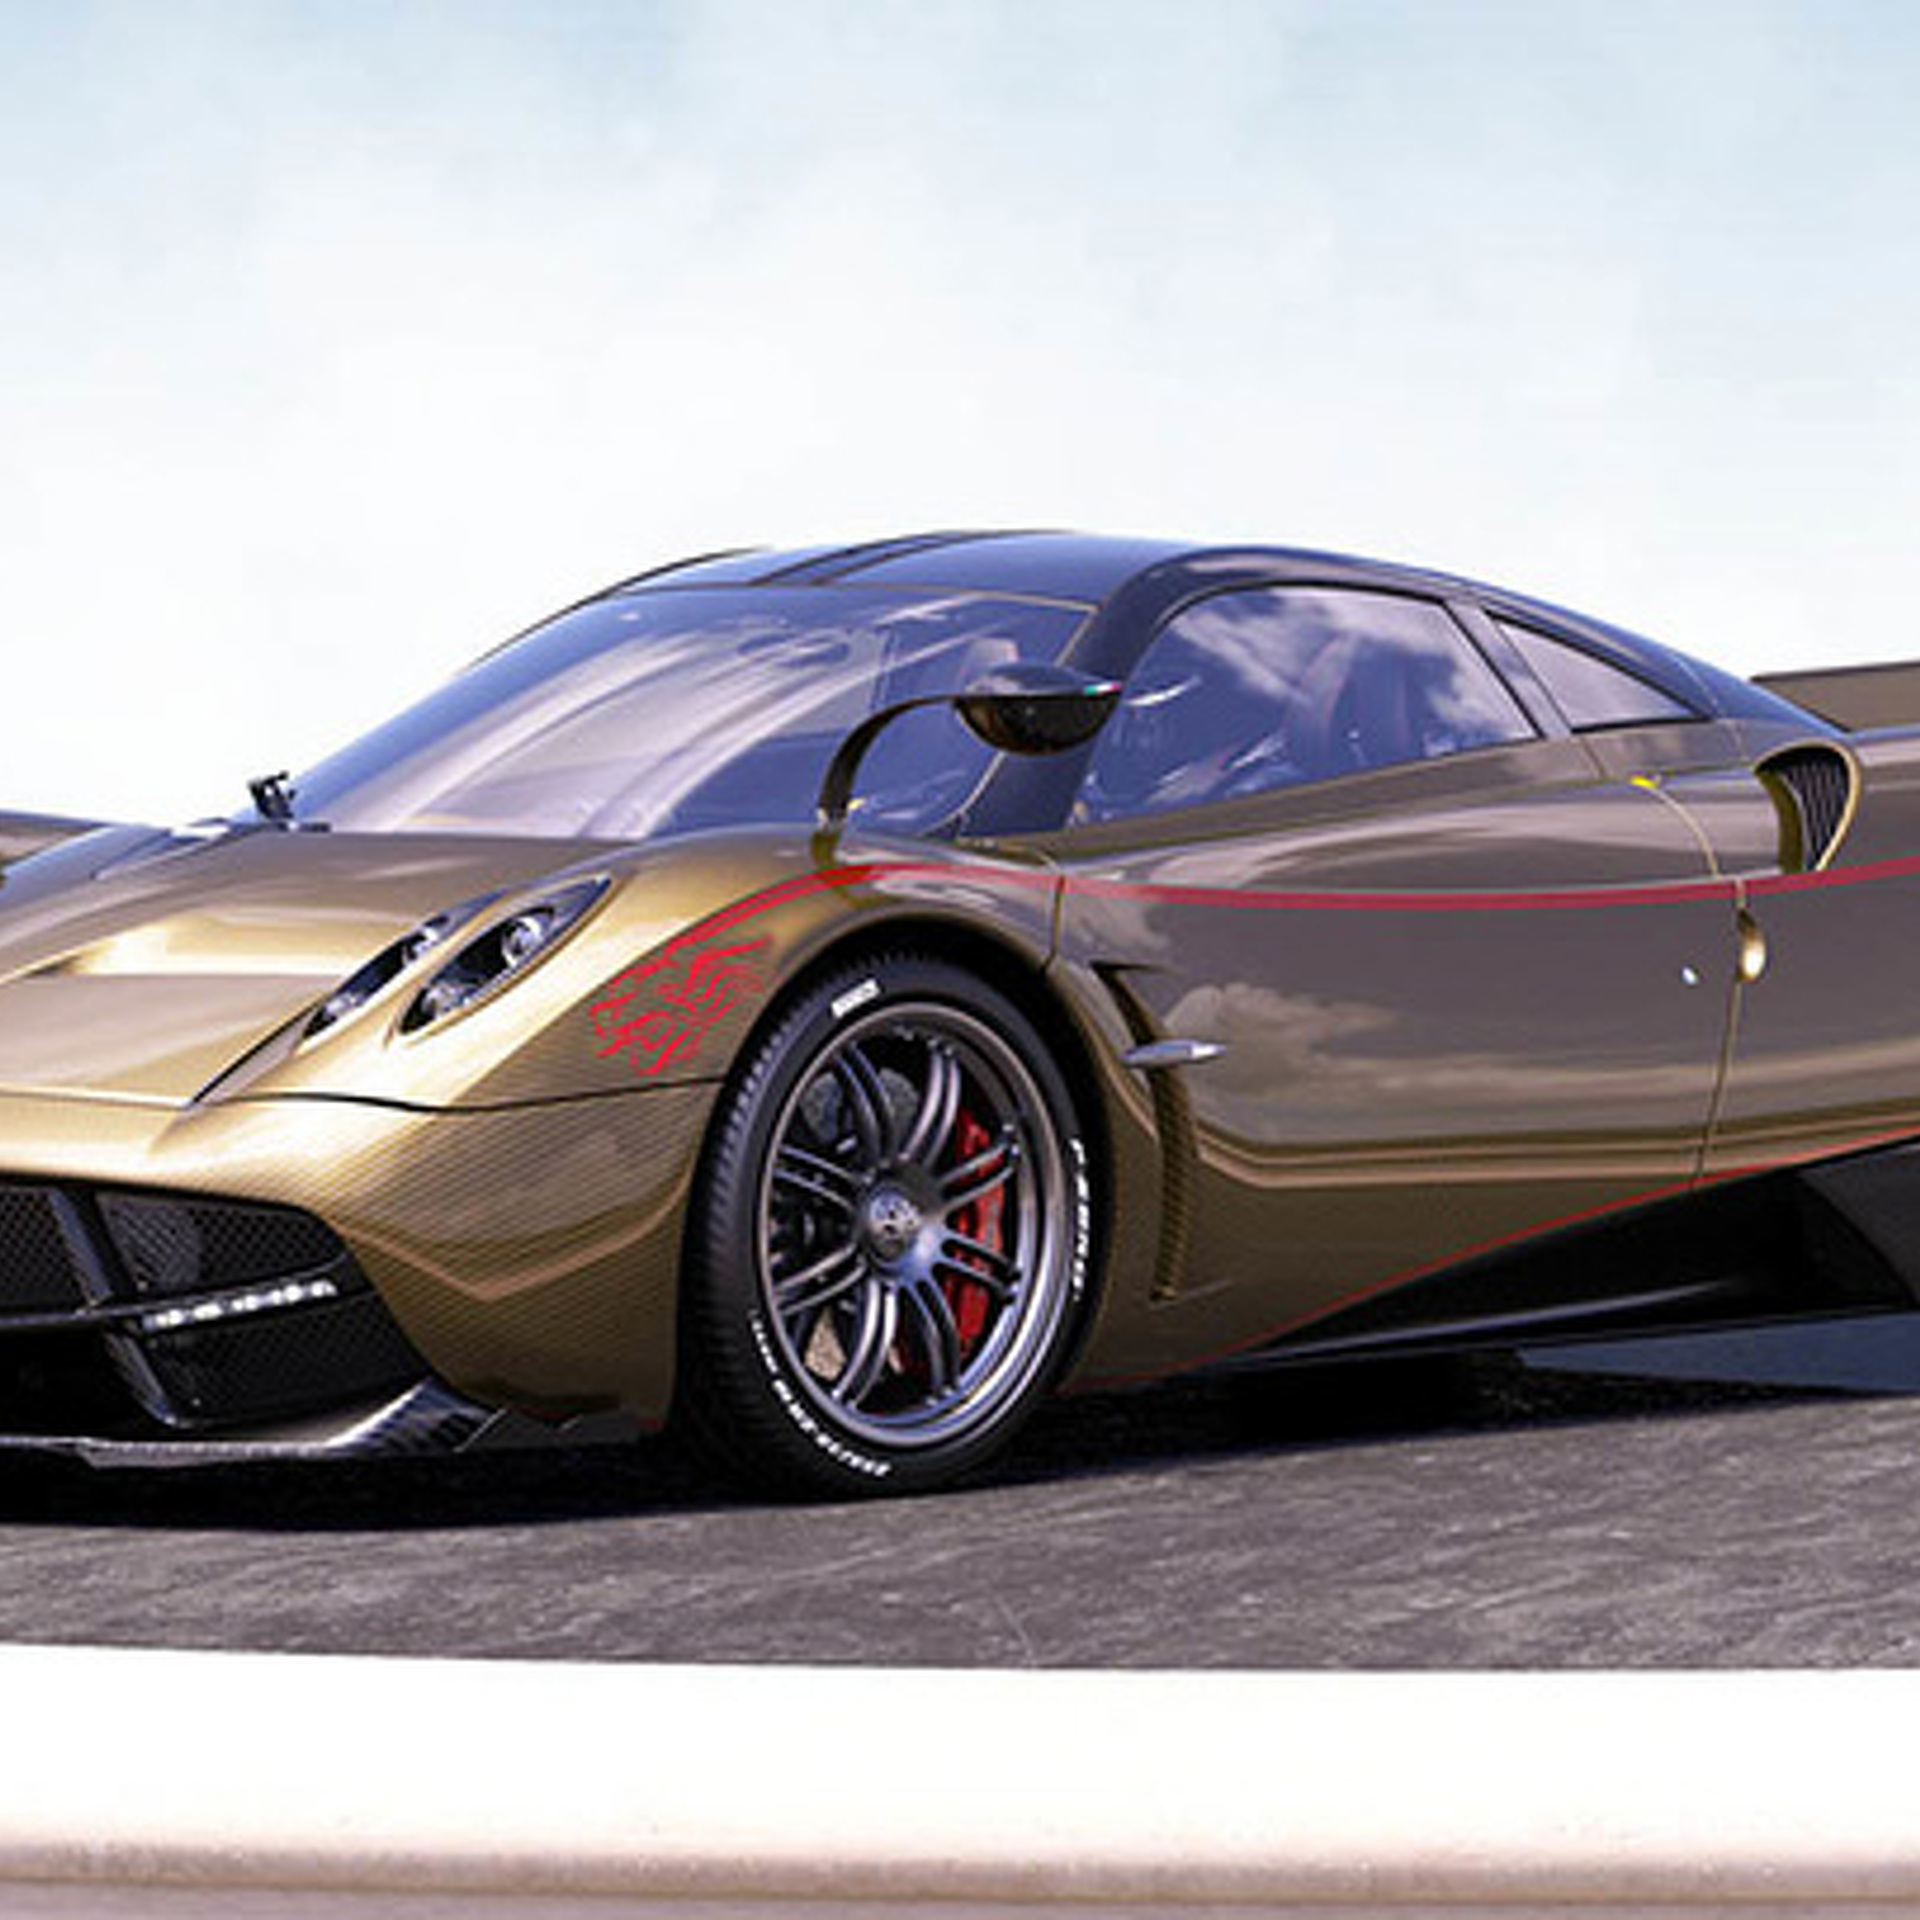 10 Eye-Popping Bare Carbon Fiber Supercars